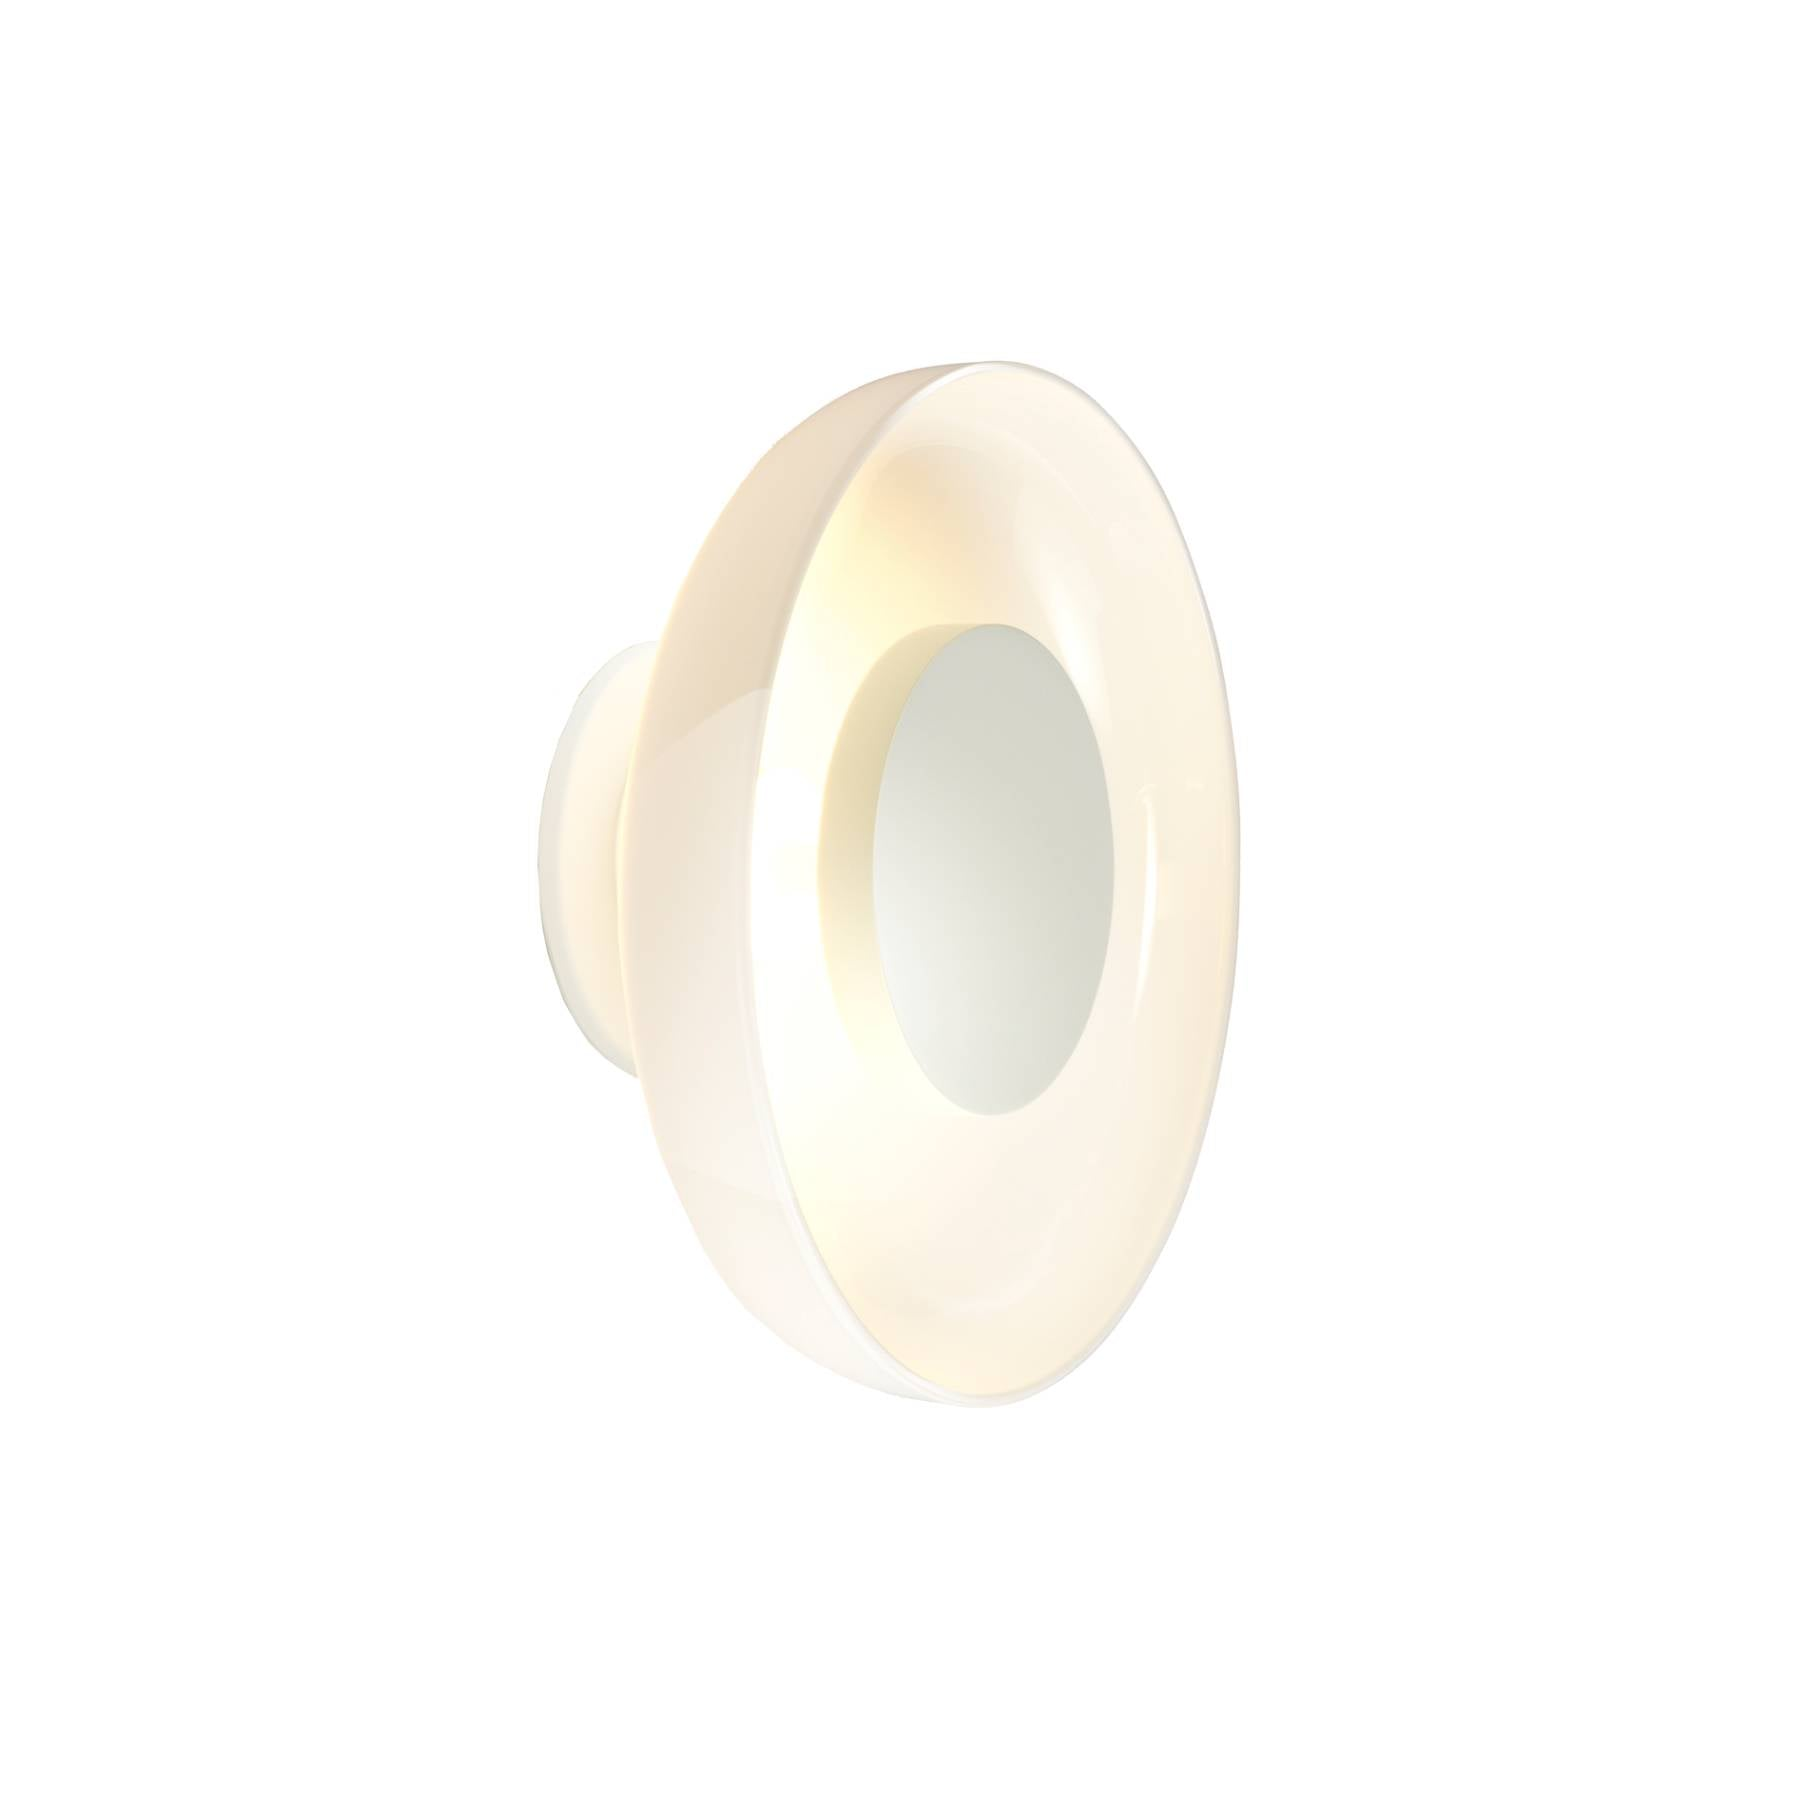 Aura Plus Wall Light: Opal